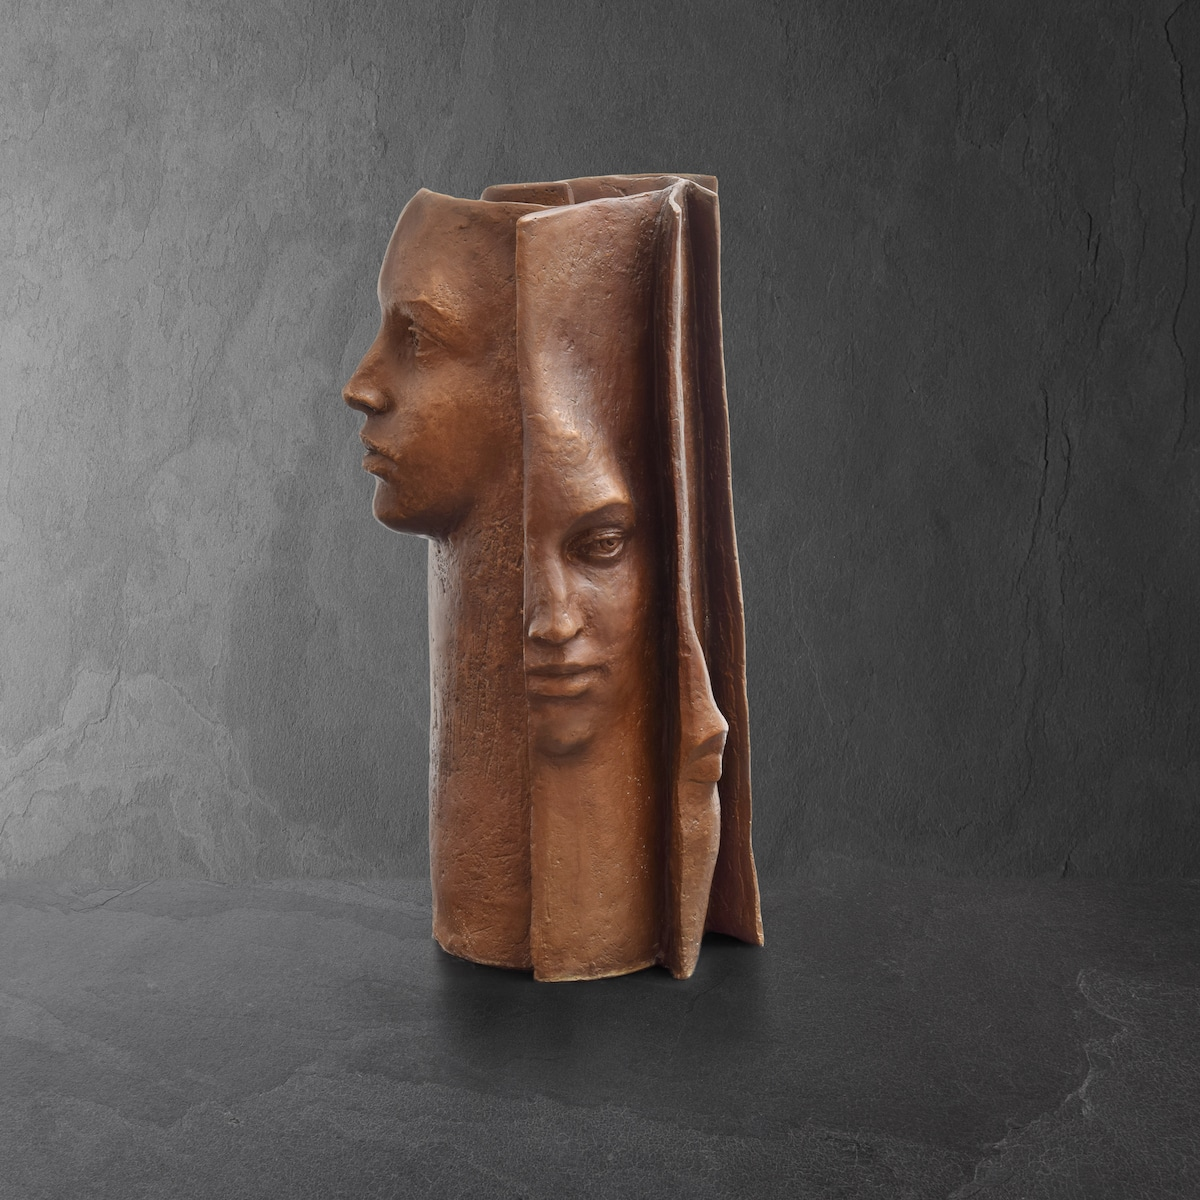 Paola Grizi Bronze Sculpture